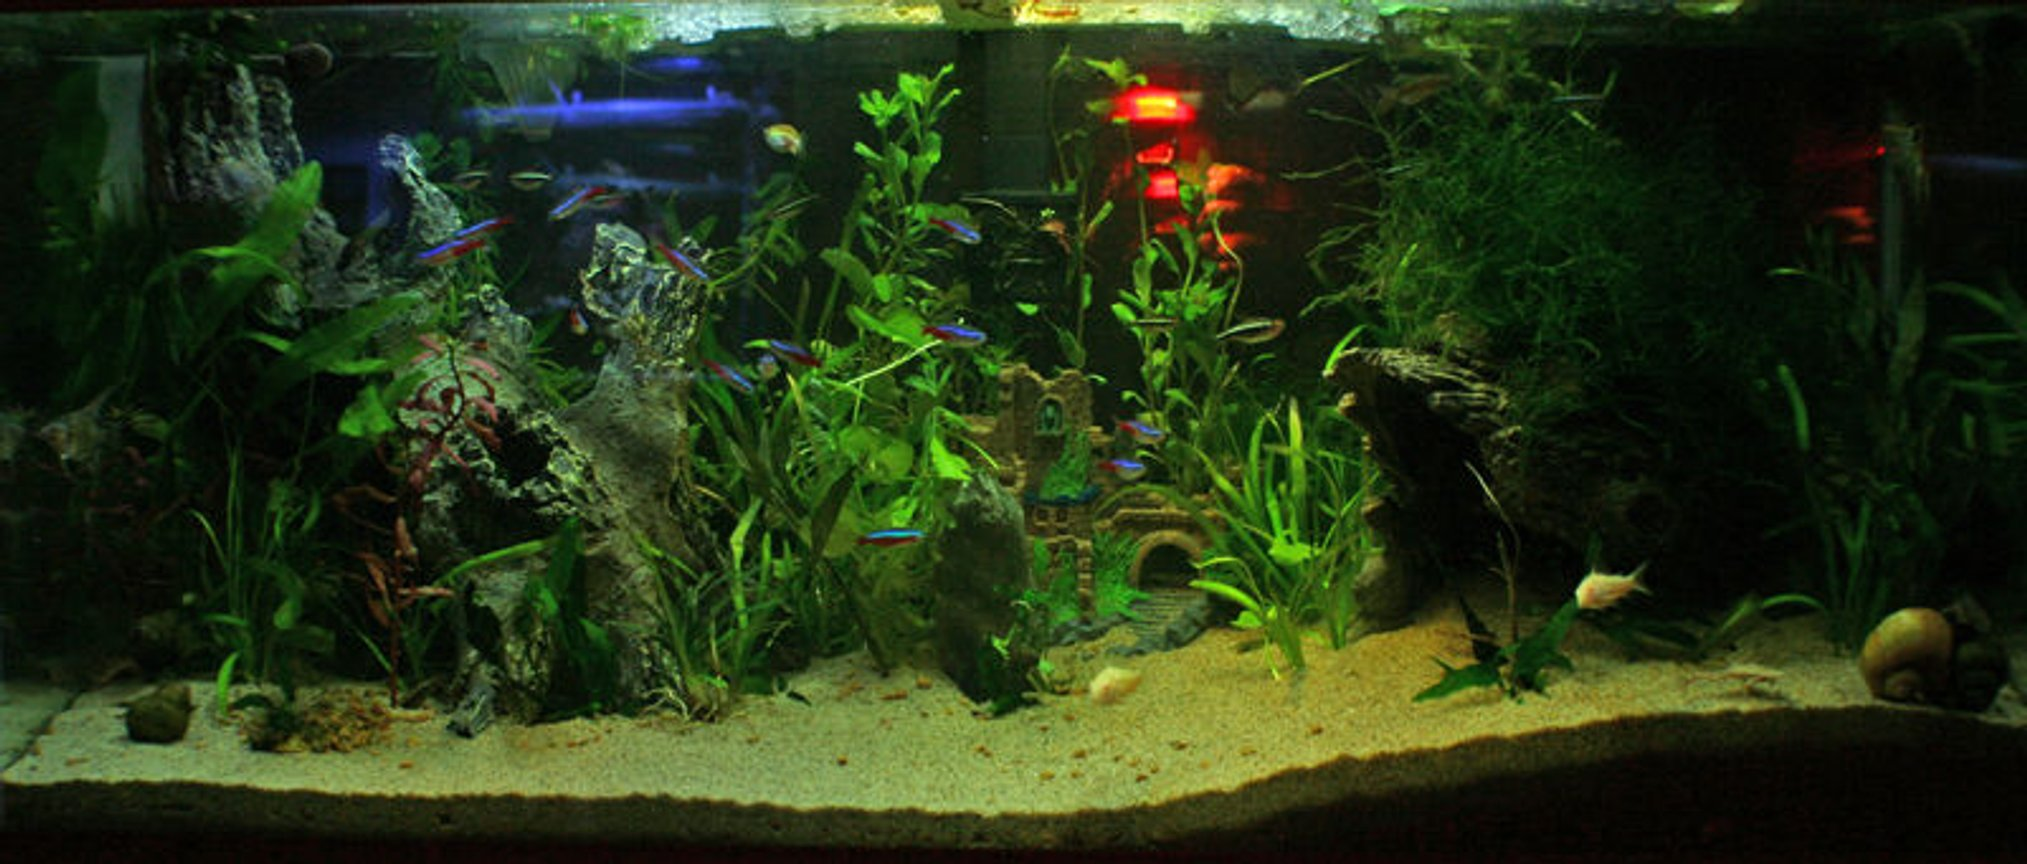 35 gallons planted tank (mostly live plants and fish) - Planted tank. 35 Gallons US Neon Tetra Black Tetra Cardinal Tetra Corydora Betta